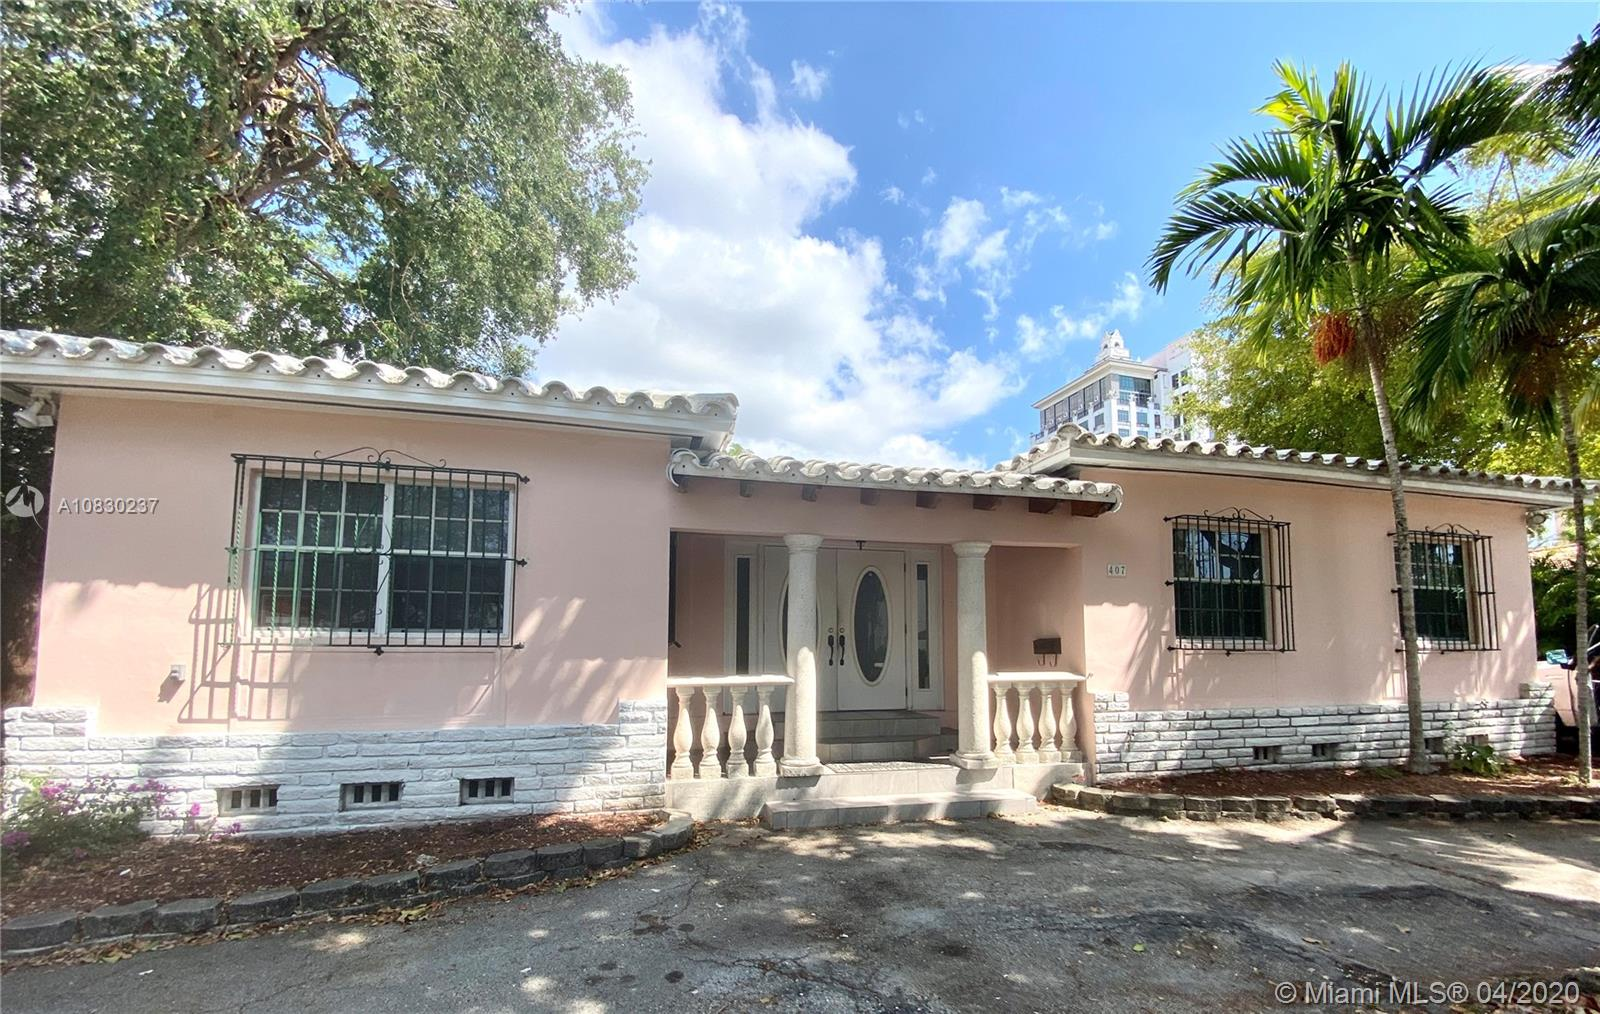 407  Aragon Ave  For Sale A10830237, FL